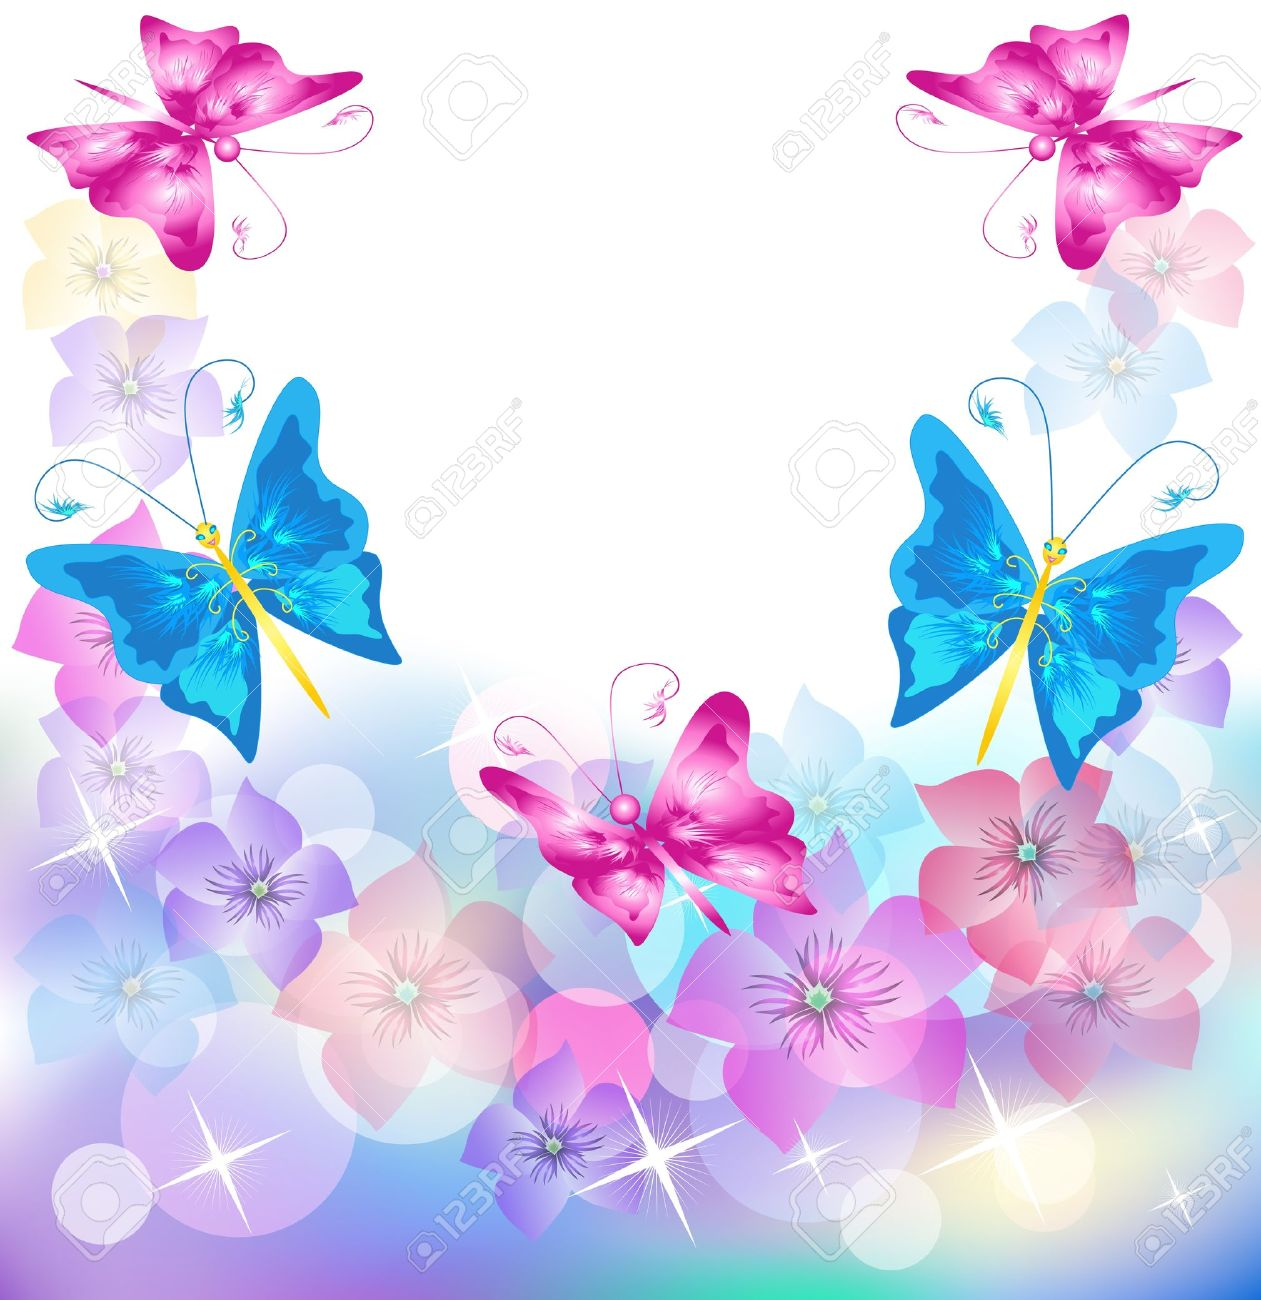 Floral background for an insert of the text or a photo. Stock Vector - 10273541